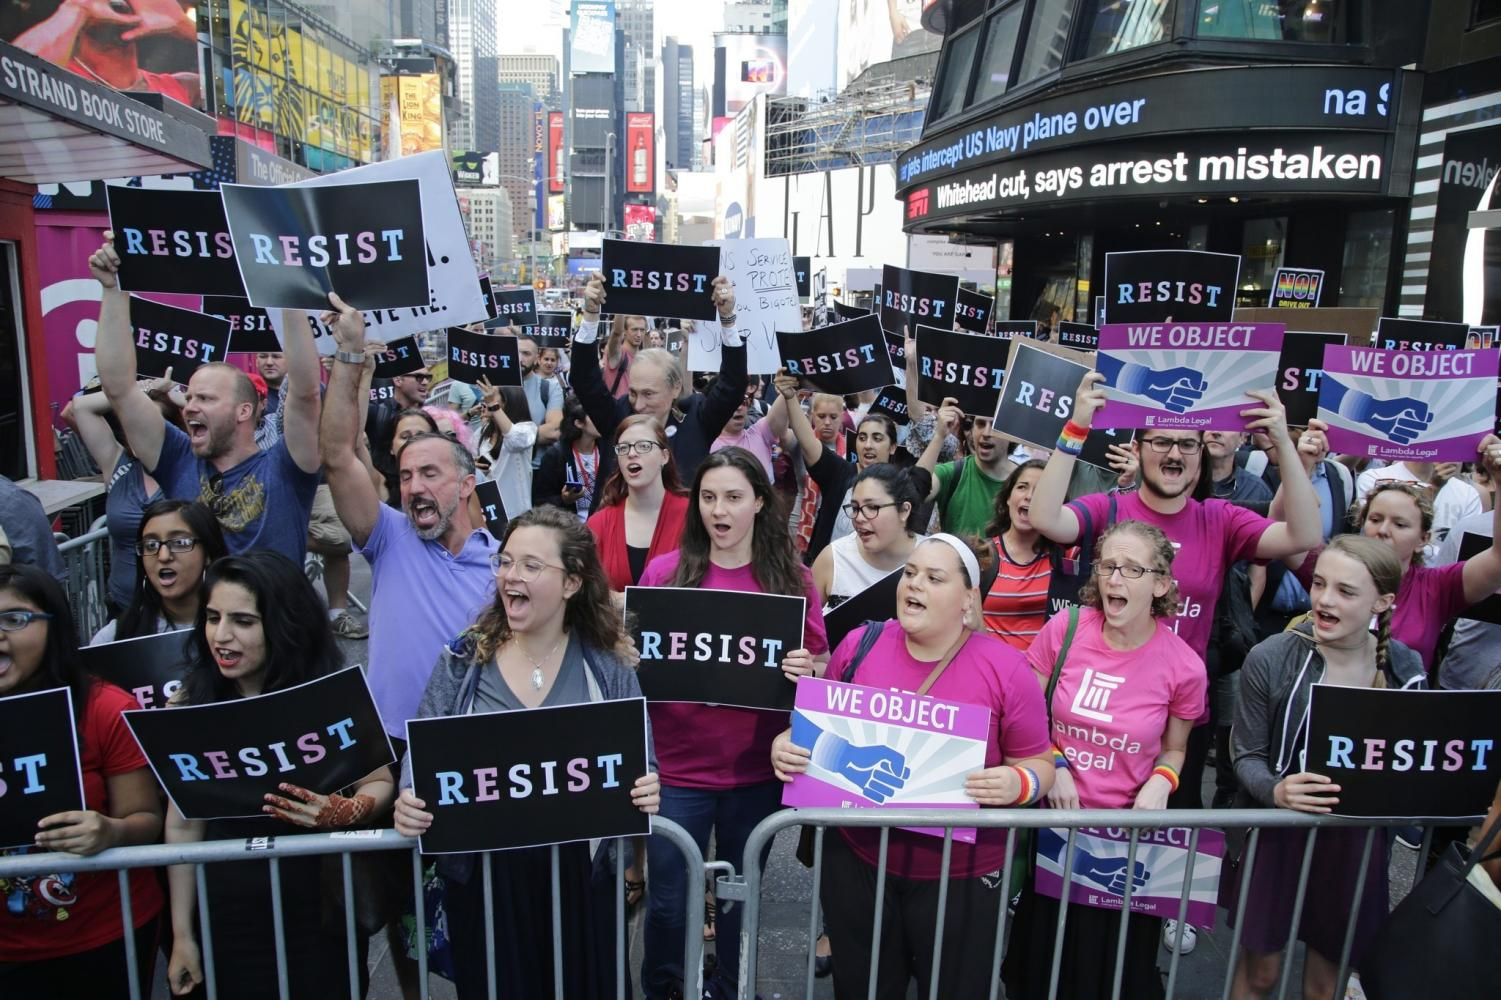 Demonstrators gather at Times Square in New York City to protest the ban issued by President Trump on July 26 that bars transgender soldiers from serving in the Armed Forces